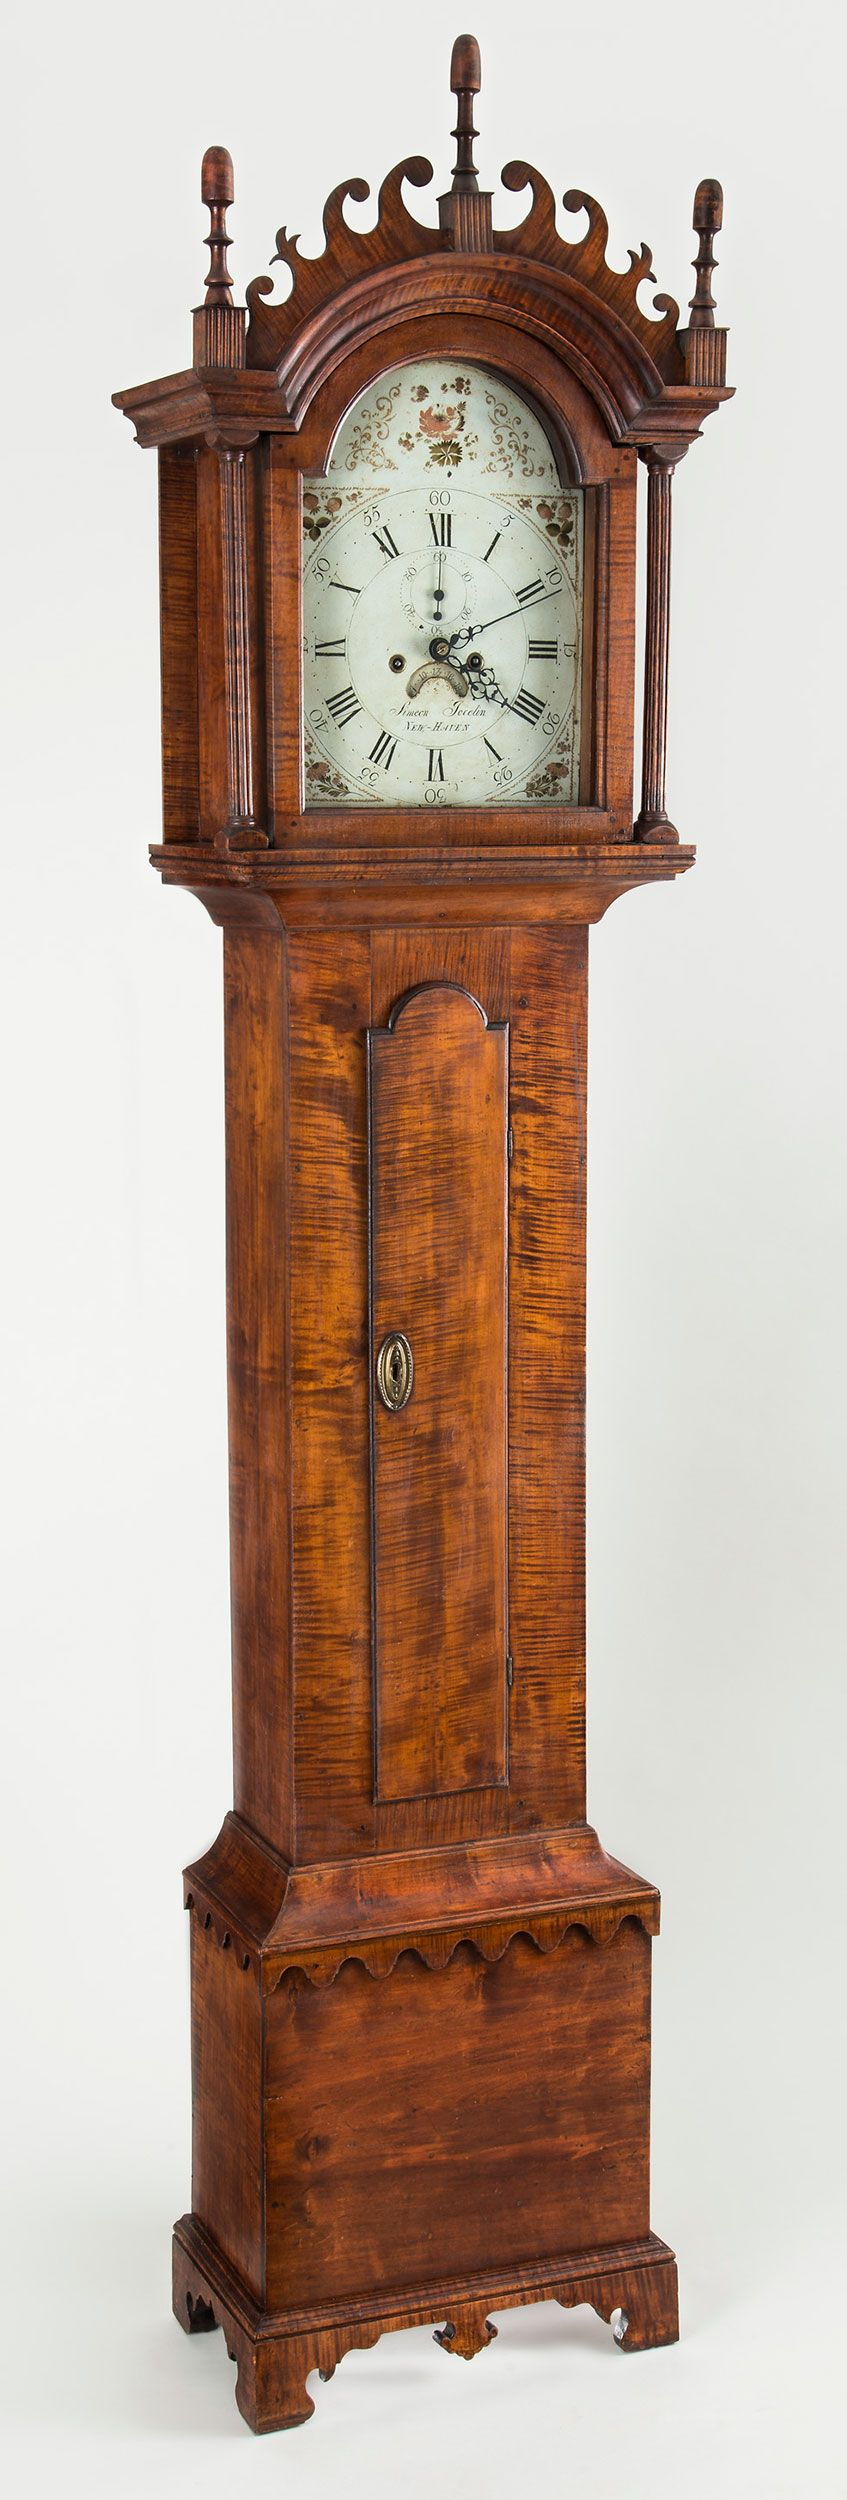 Chippendale tall-case clock, WORKS BY SIMEON JOCELIN (1746-1823), New Haven, Connecticut, circa 1790.